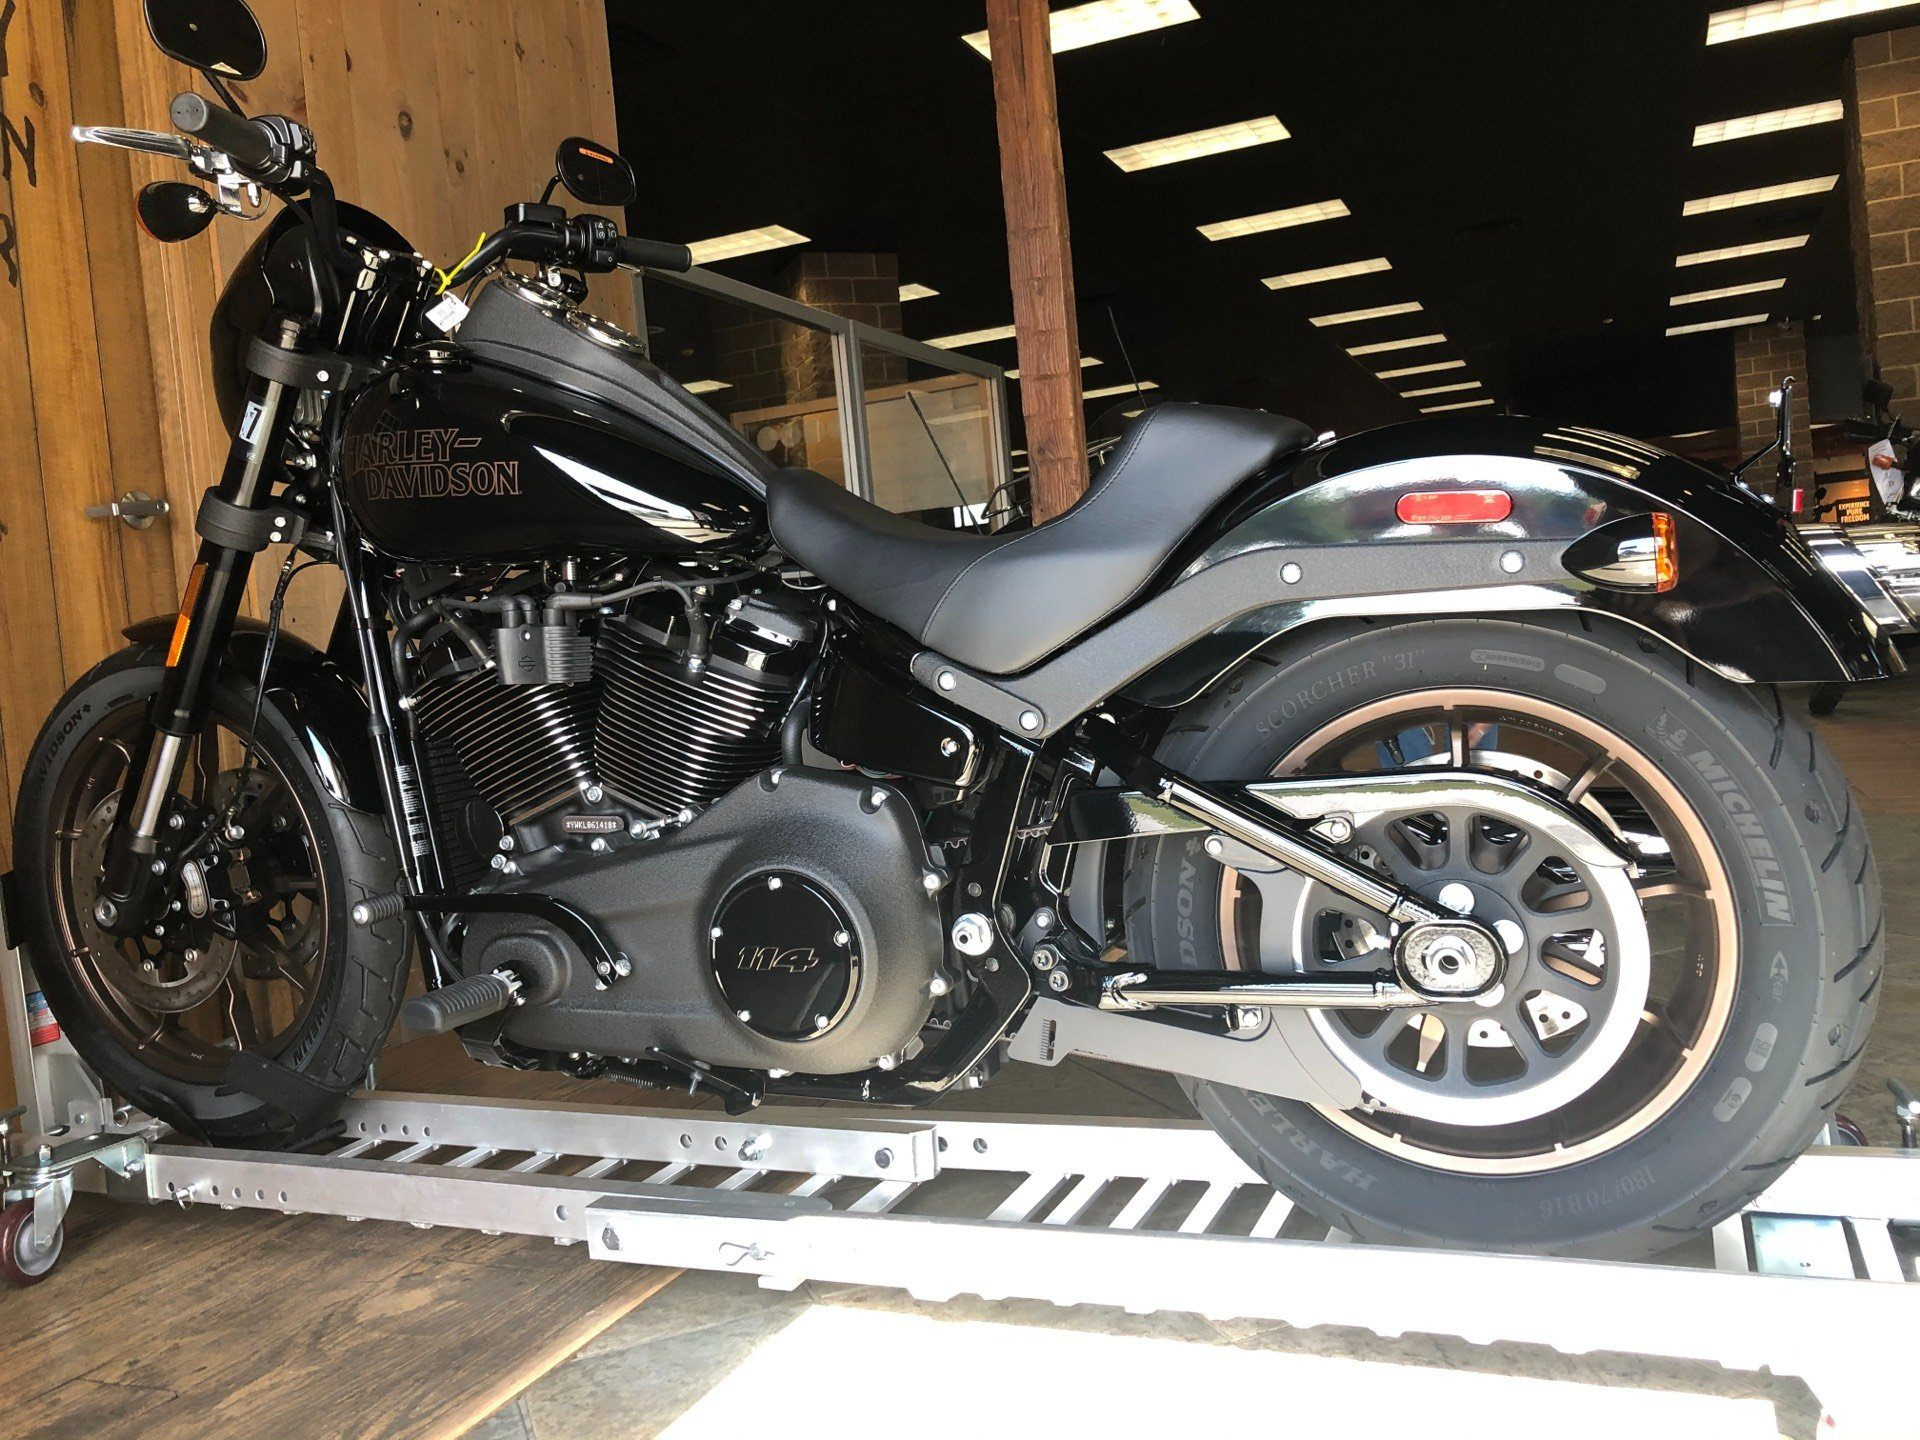 2020 Harley-Davidson Low Rider S in Harrisburg, Pennsylvania - Photo 6